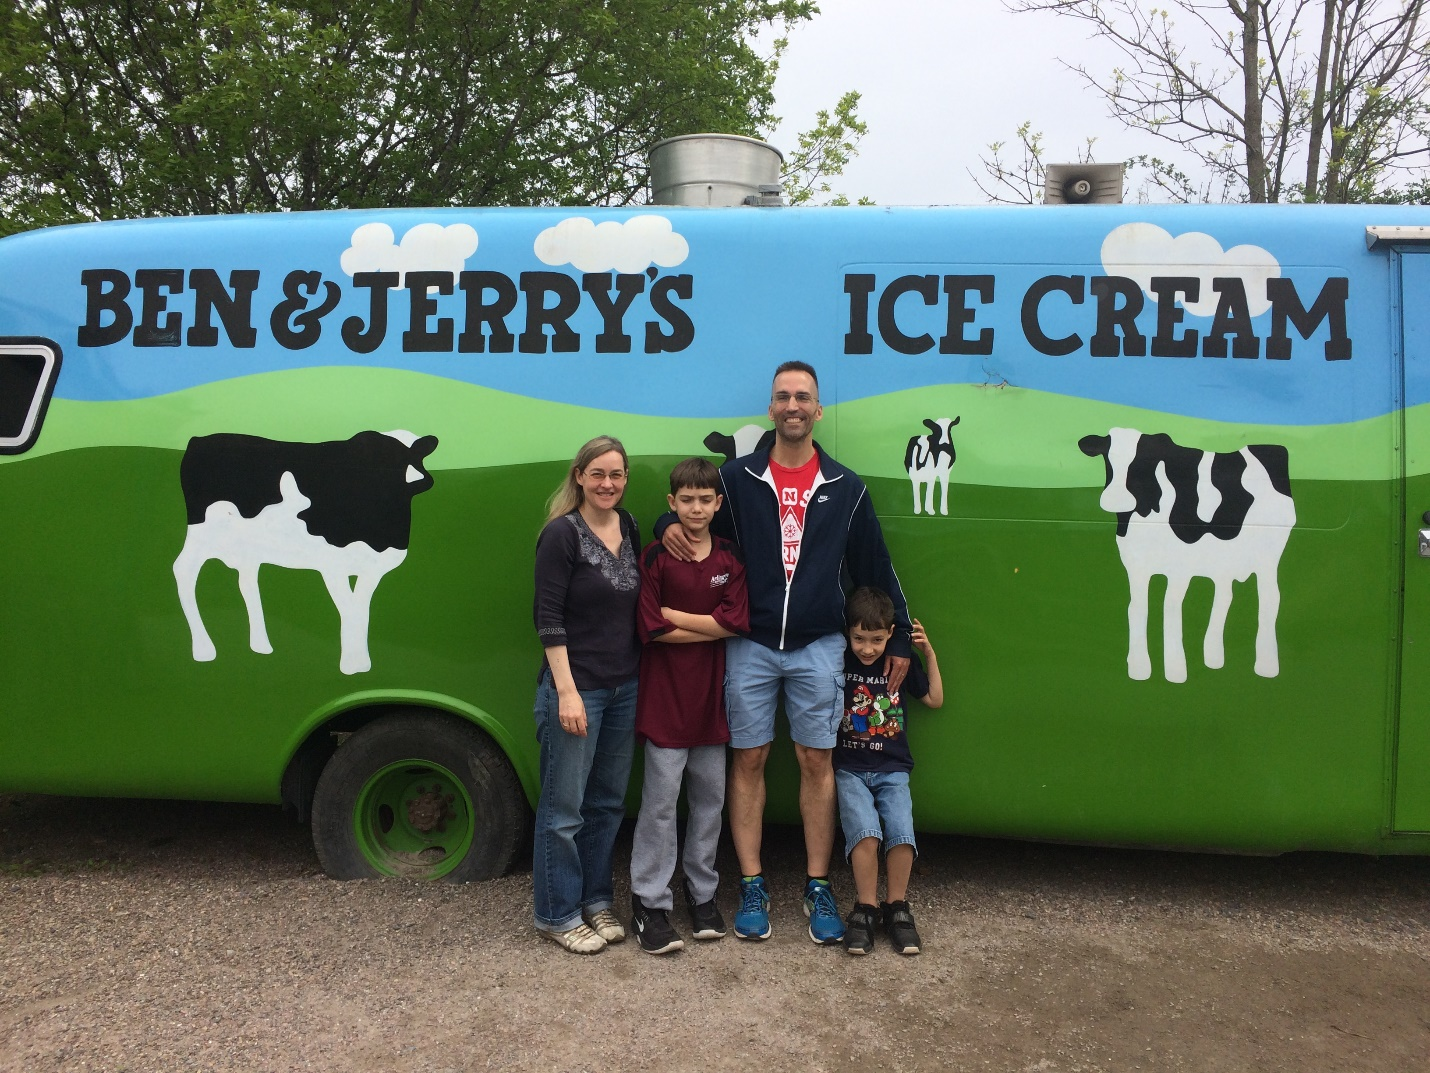 Gary and family at Ben and Jerry's